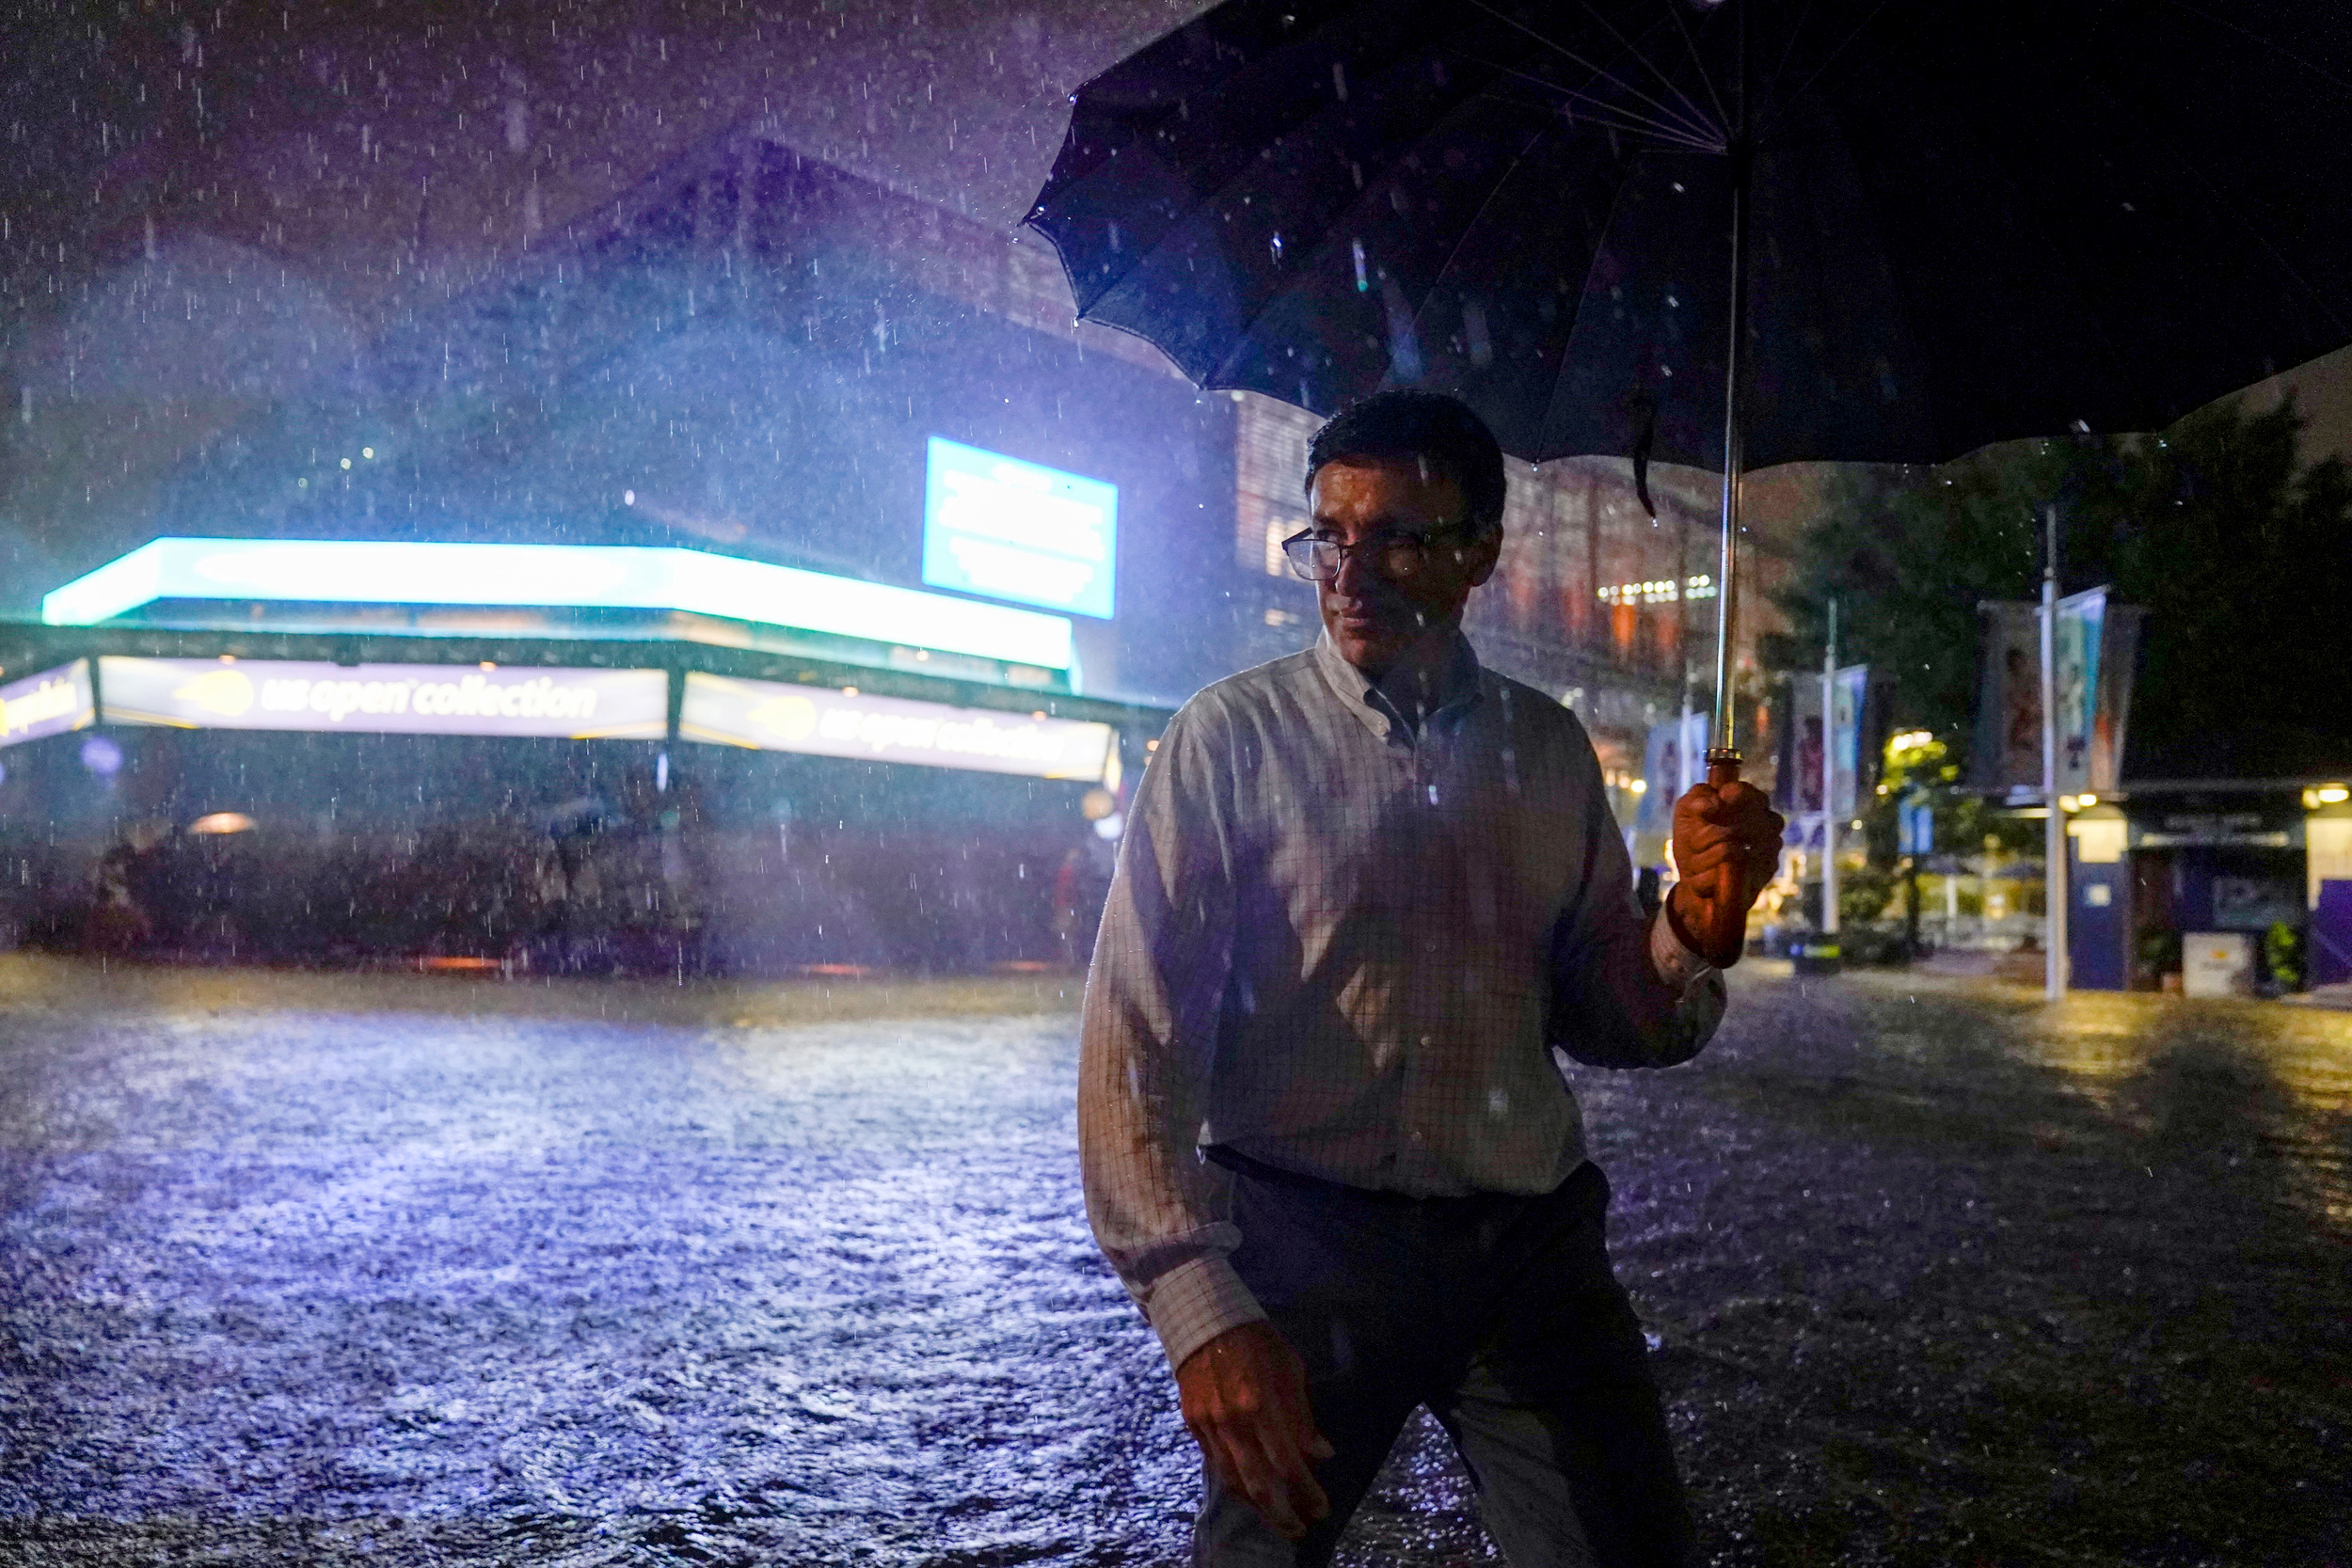 At least 14 dead as Ida batters New York region with record rain and floods